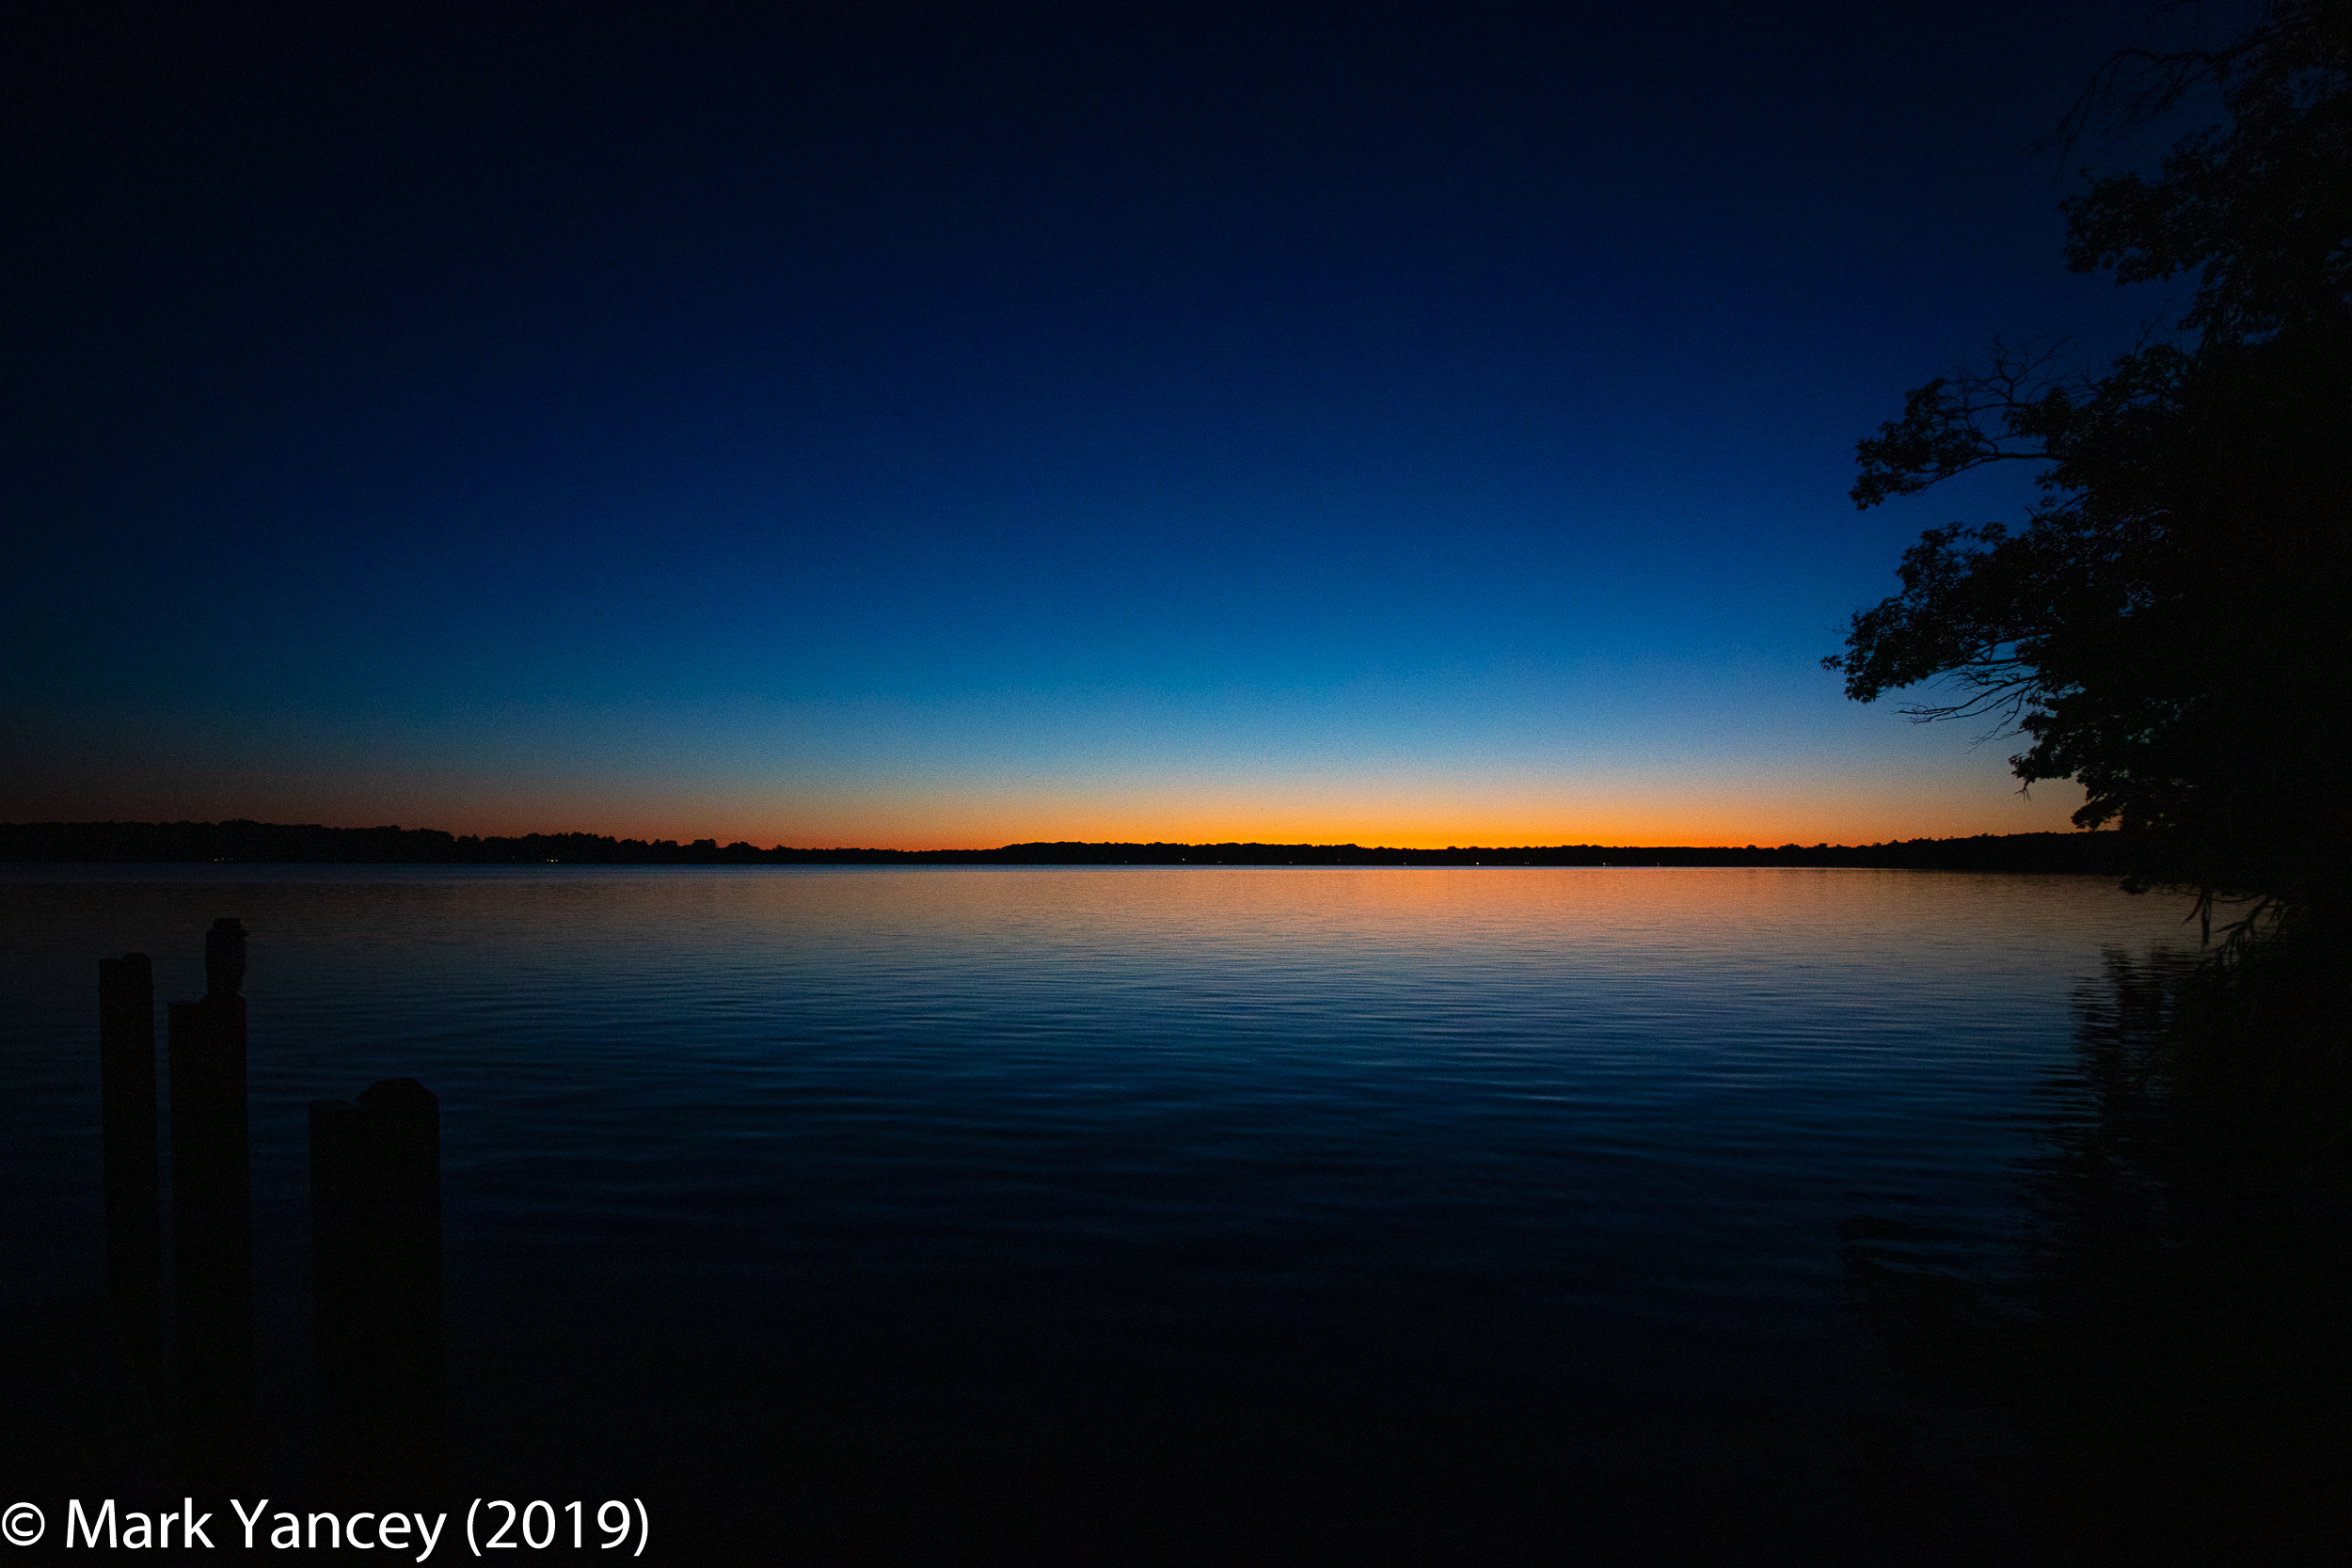 Sunset, Green Lake, August 2019